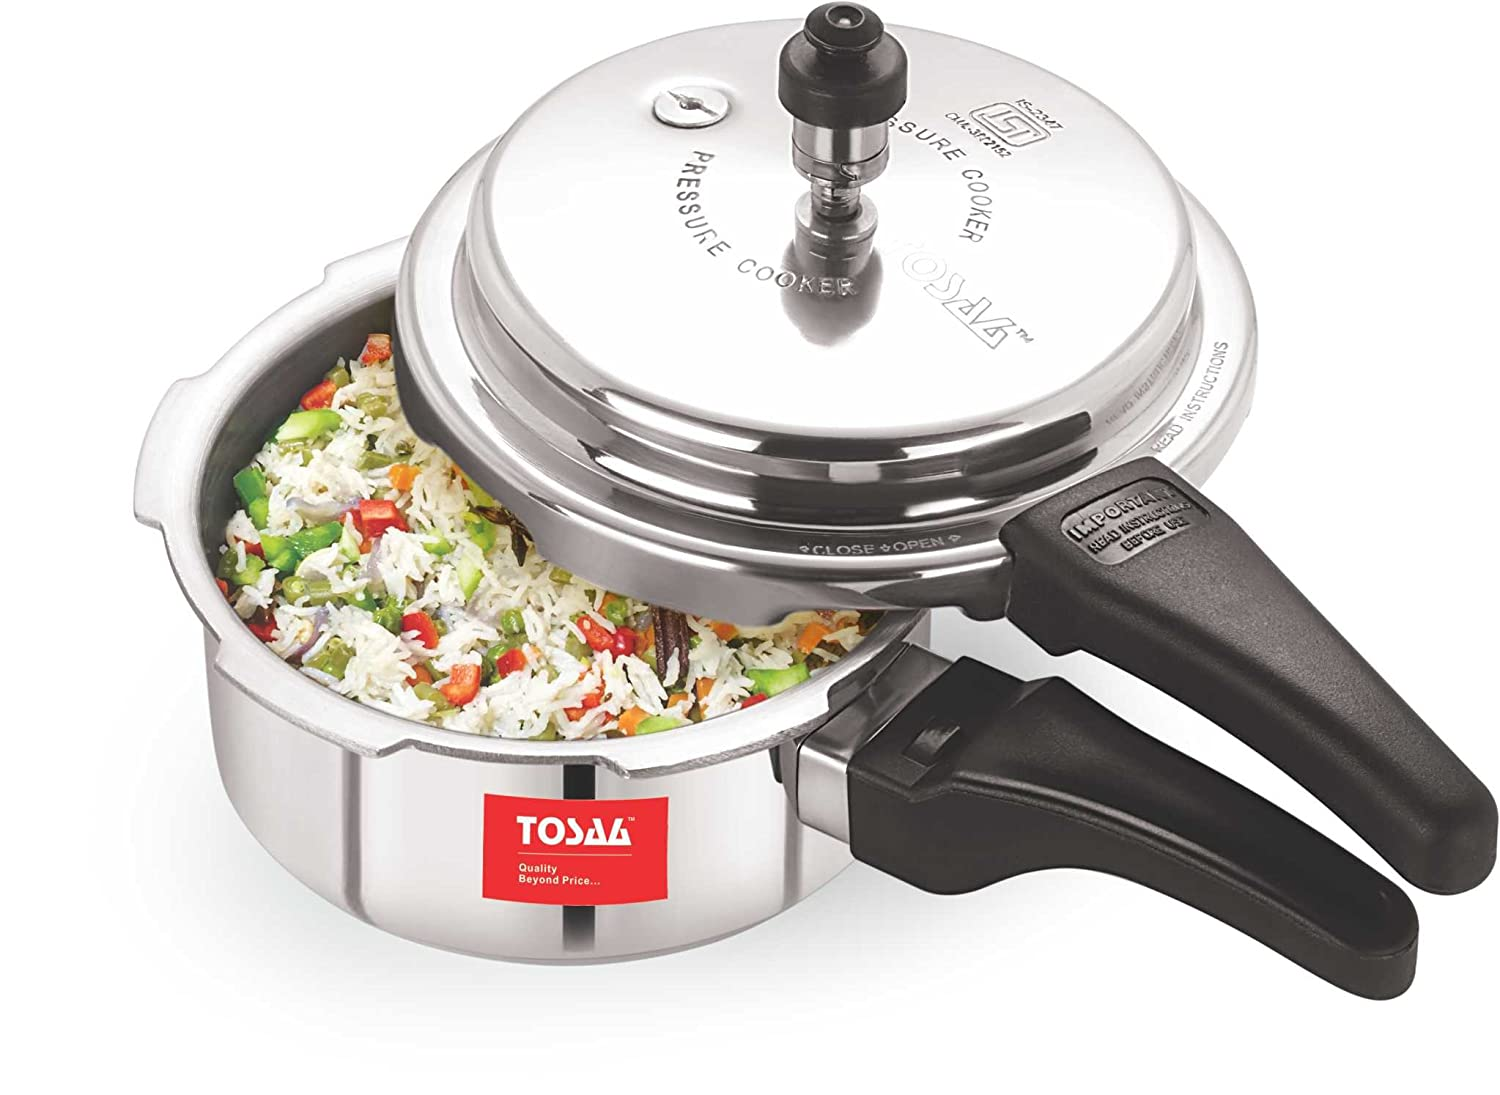 Upto 40% off On Top Brands, Kitchen & Dining By Amazon | Tosaa Ultra Range Aluminium Pressure Cooker, 2 Litres, Silver @ Rs.561